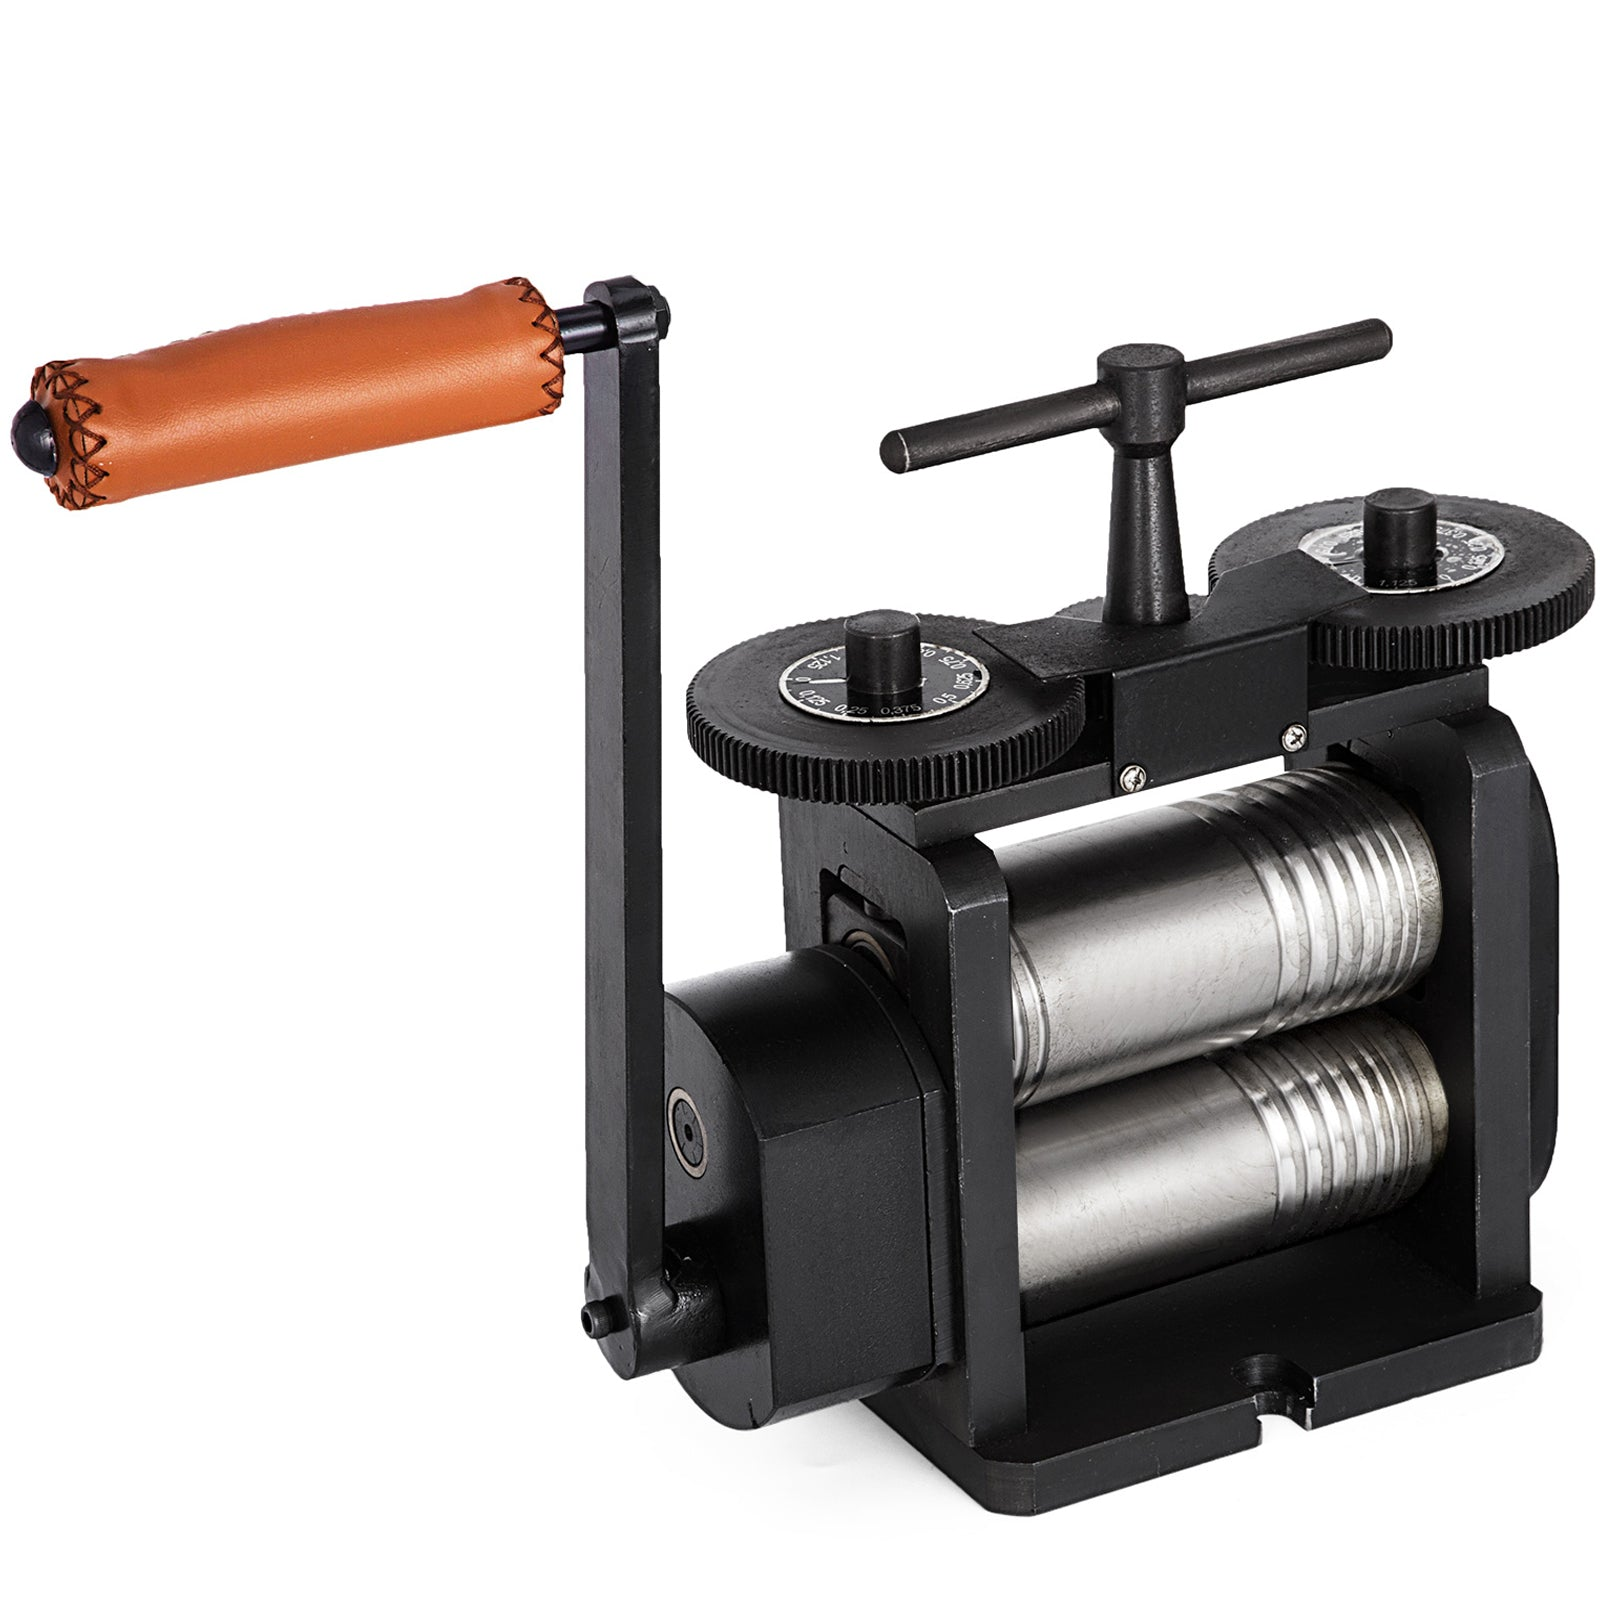 Flat Rolling Mill Machine Manual 110mm Metal Jewelers Crafts People Hot Pro